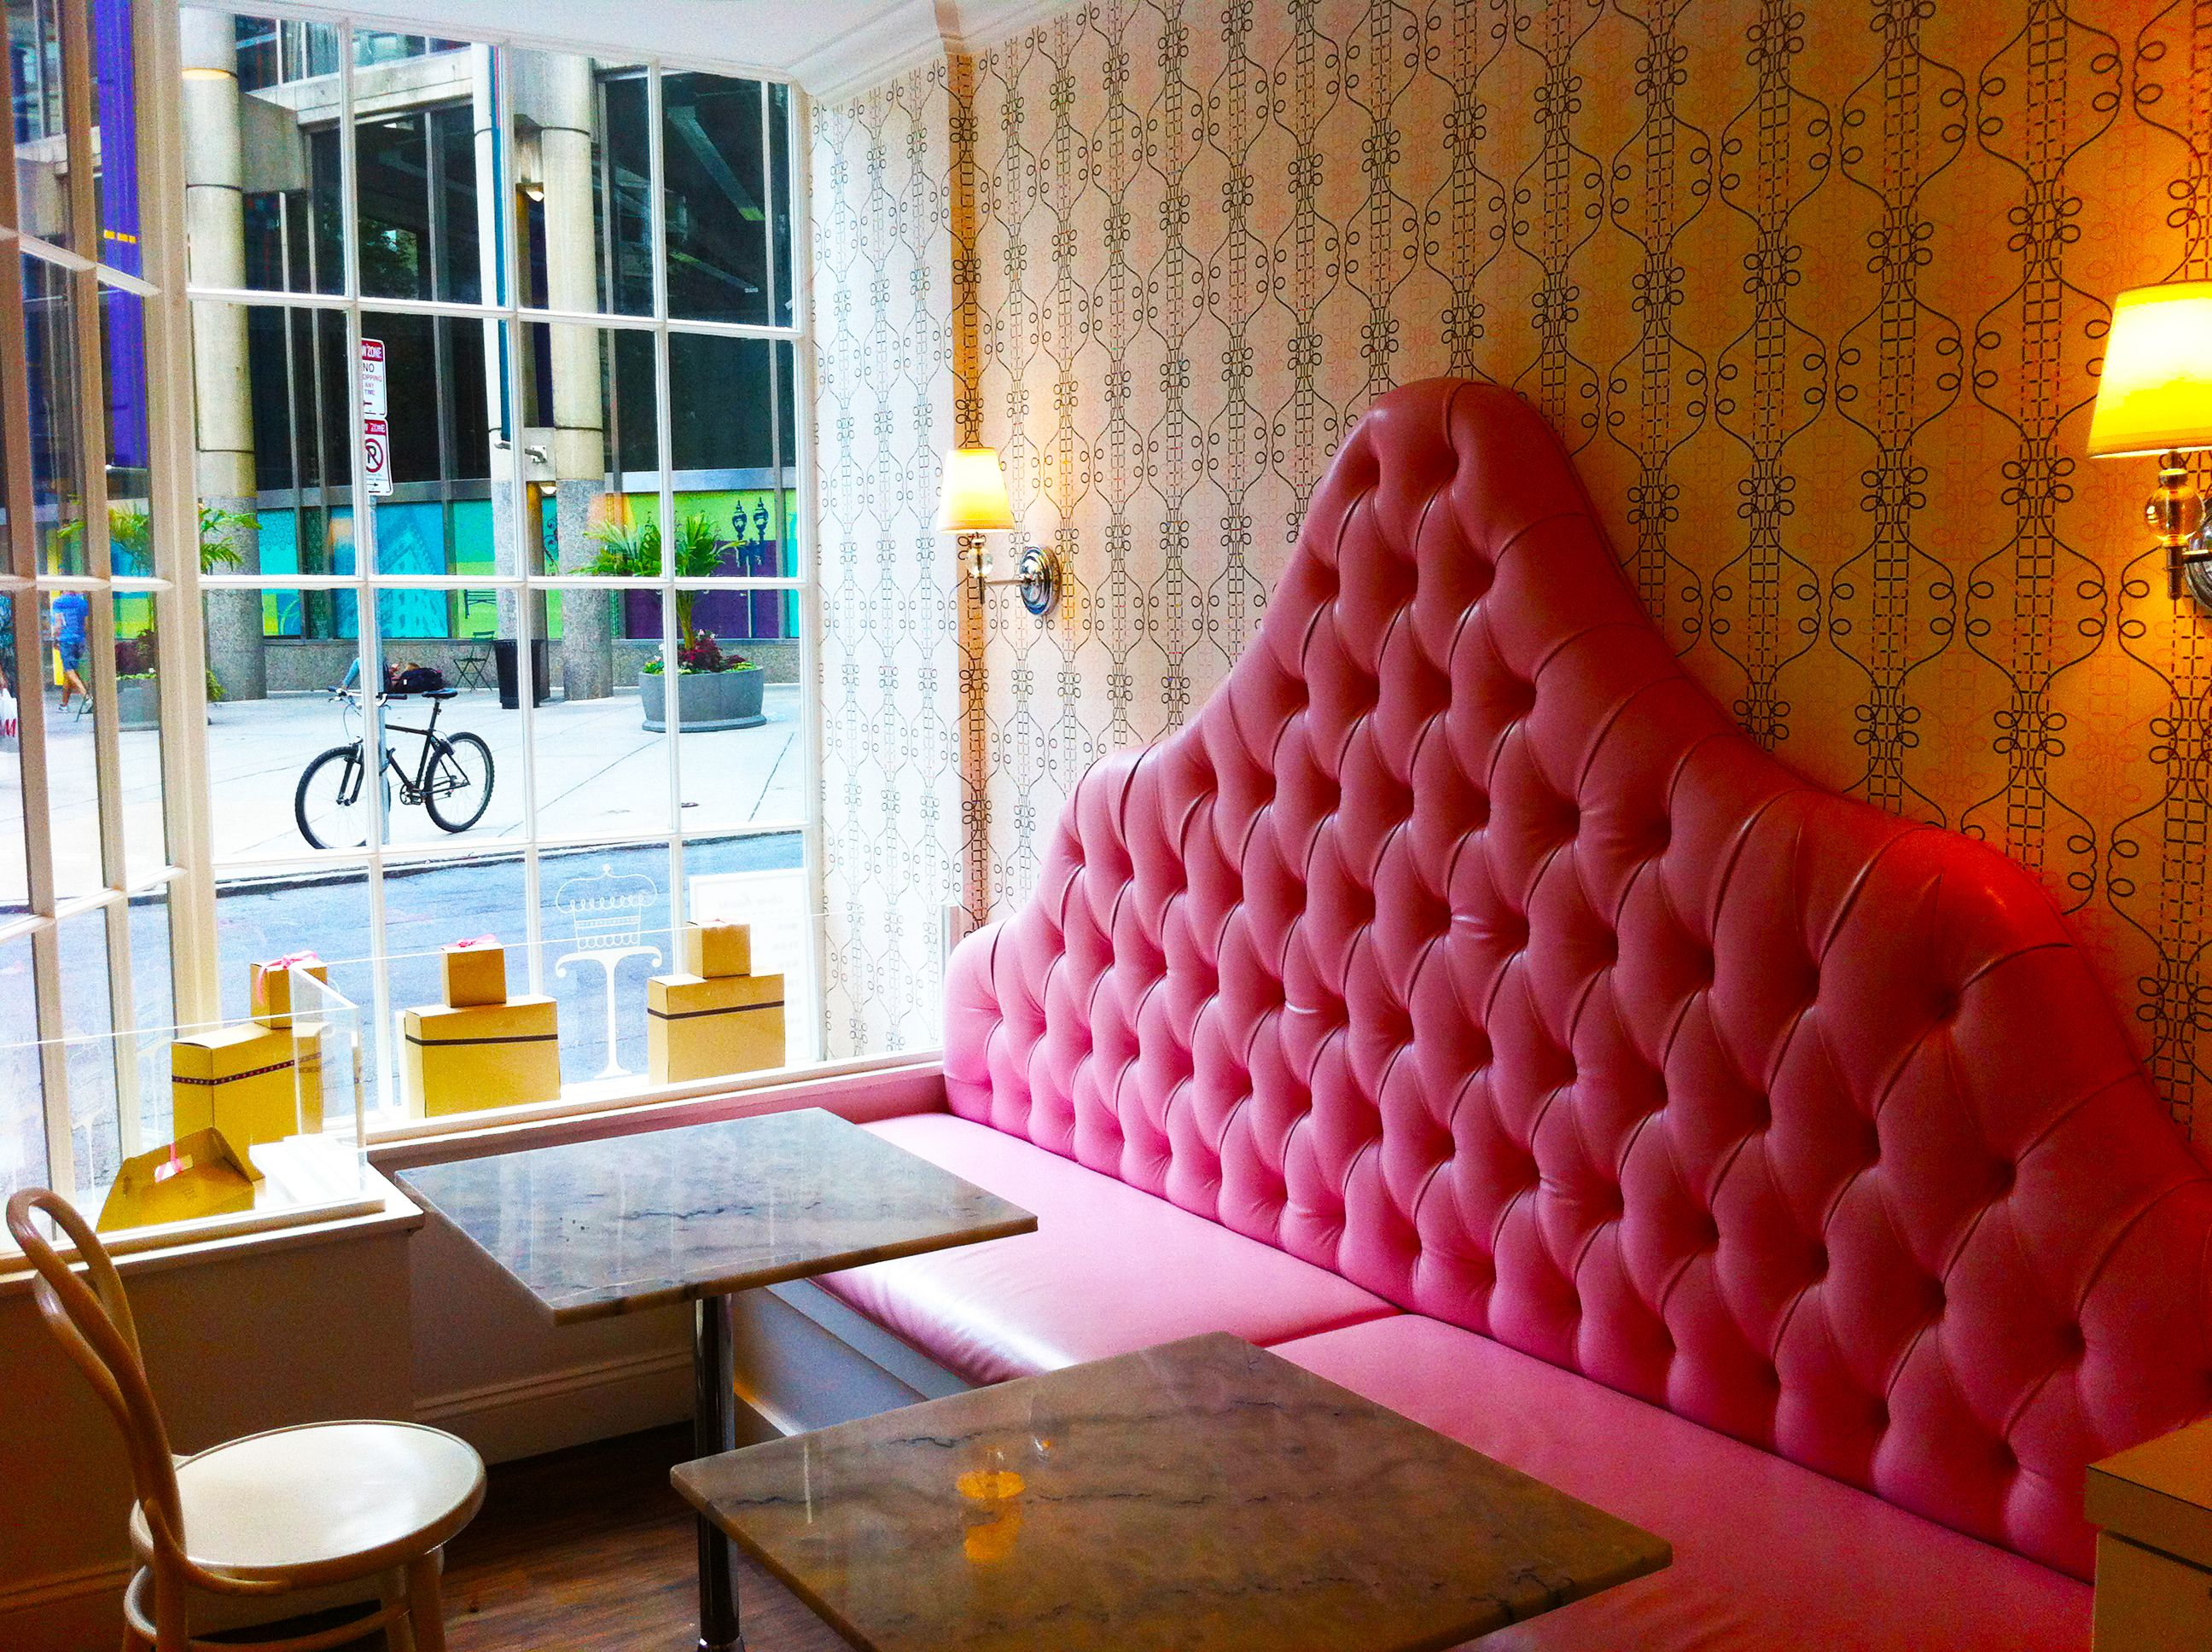 Company Sweet Cupcakes Located In Boston Massachusetts Amazing Interior Design For A Cupcake